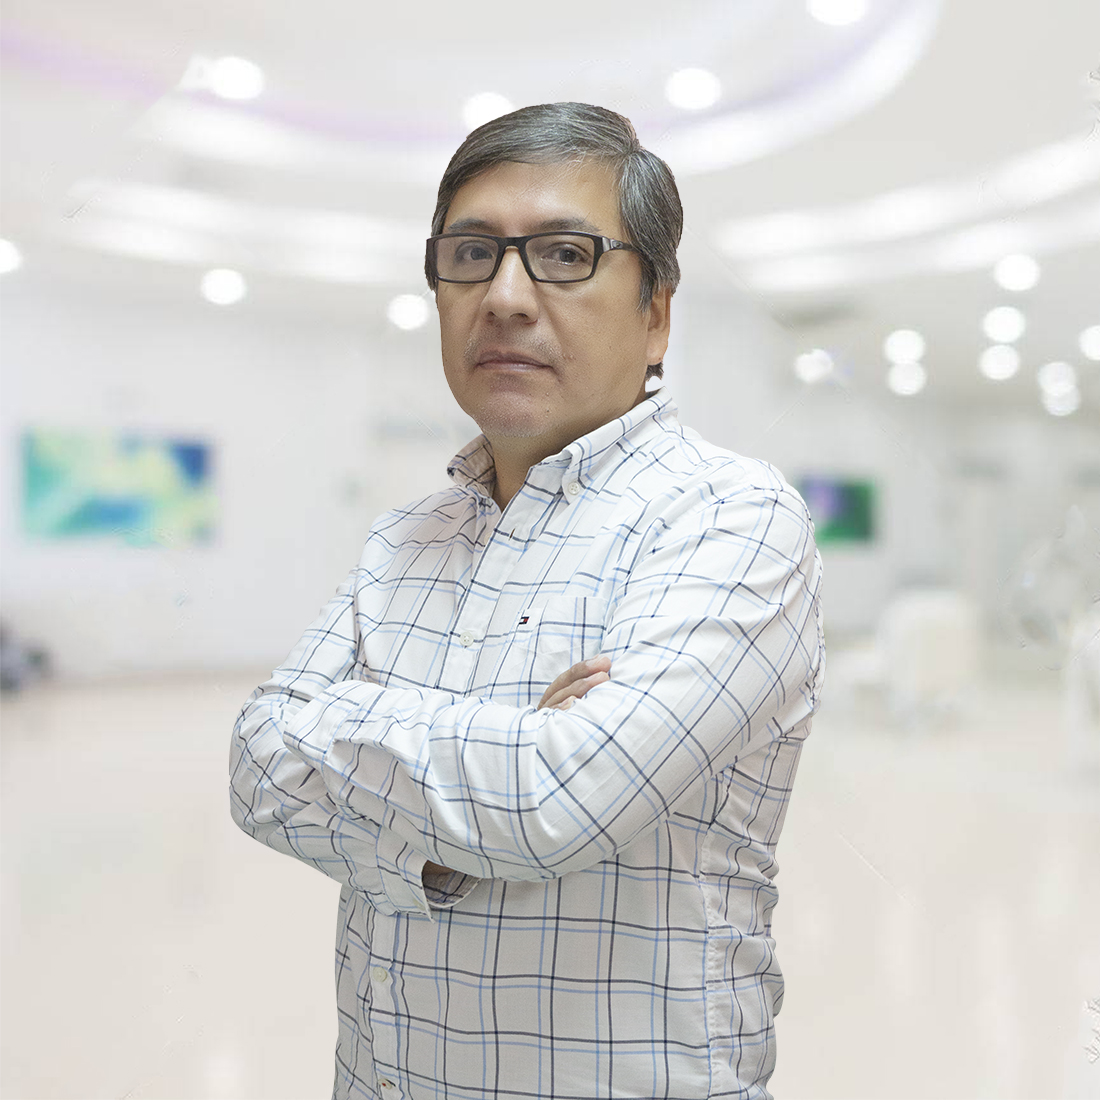 Dr. Anibal Machon Ore